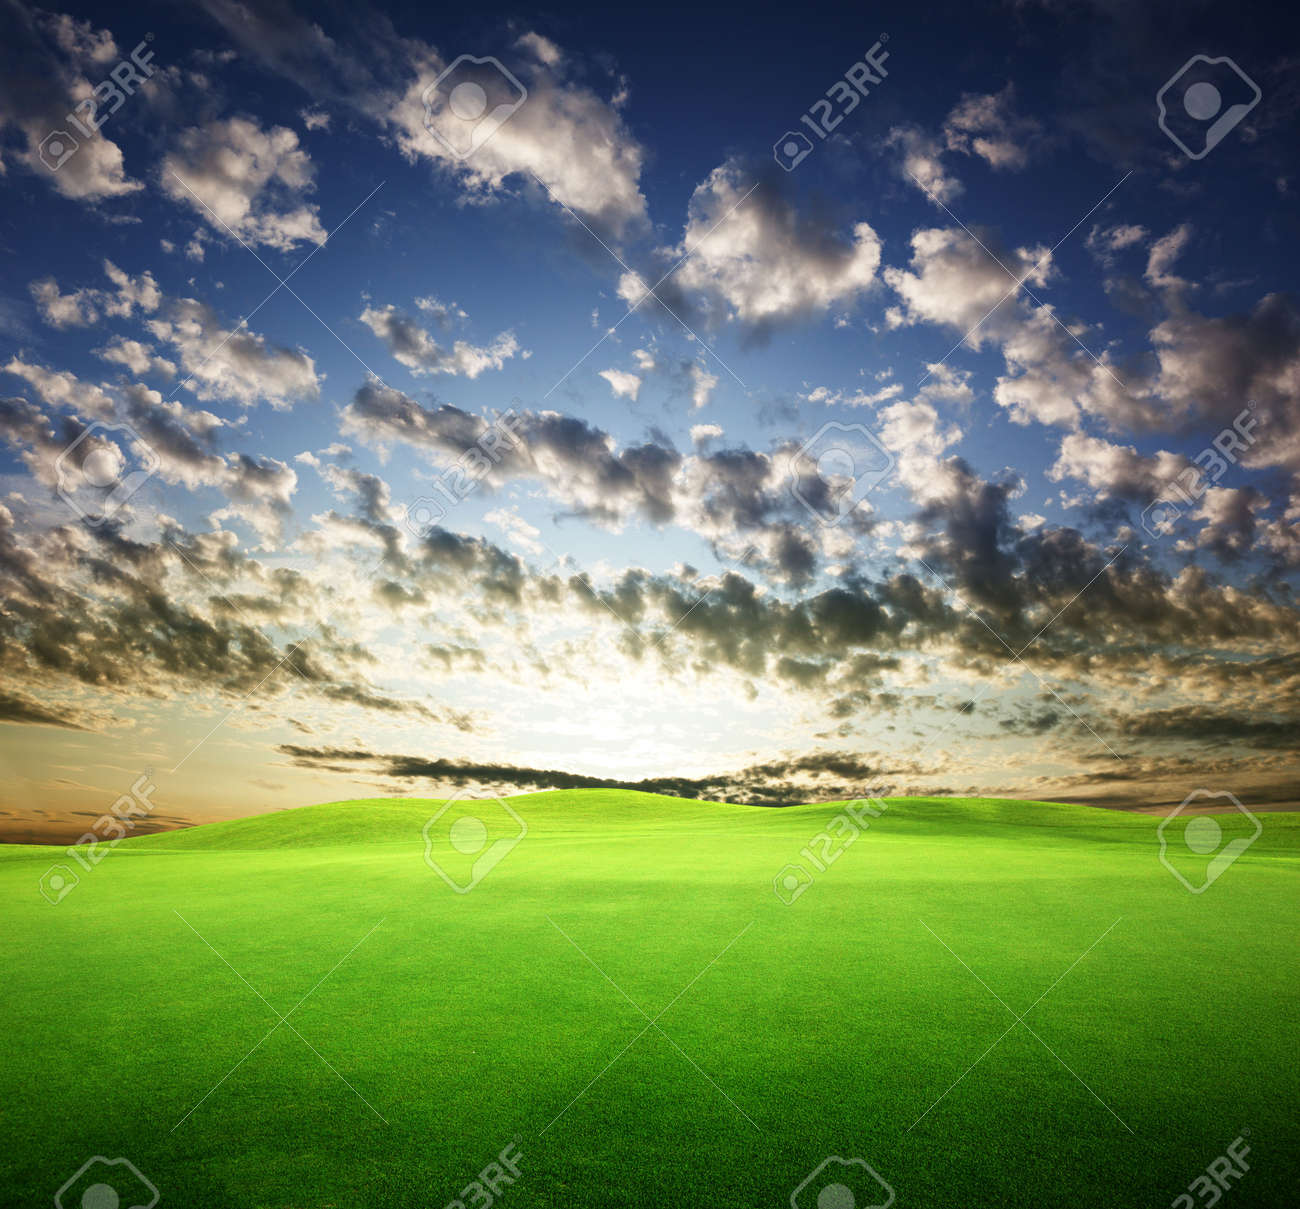 field of grass and perfect sunset sky Stock Photo - 6596863